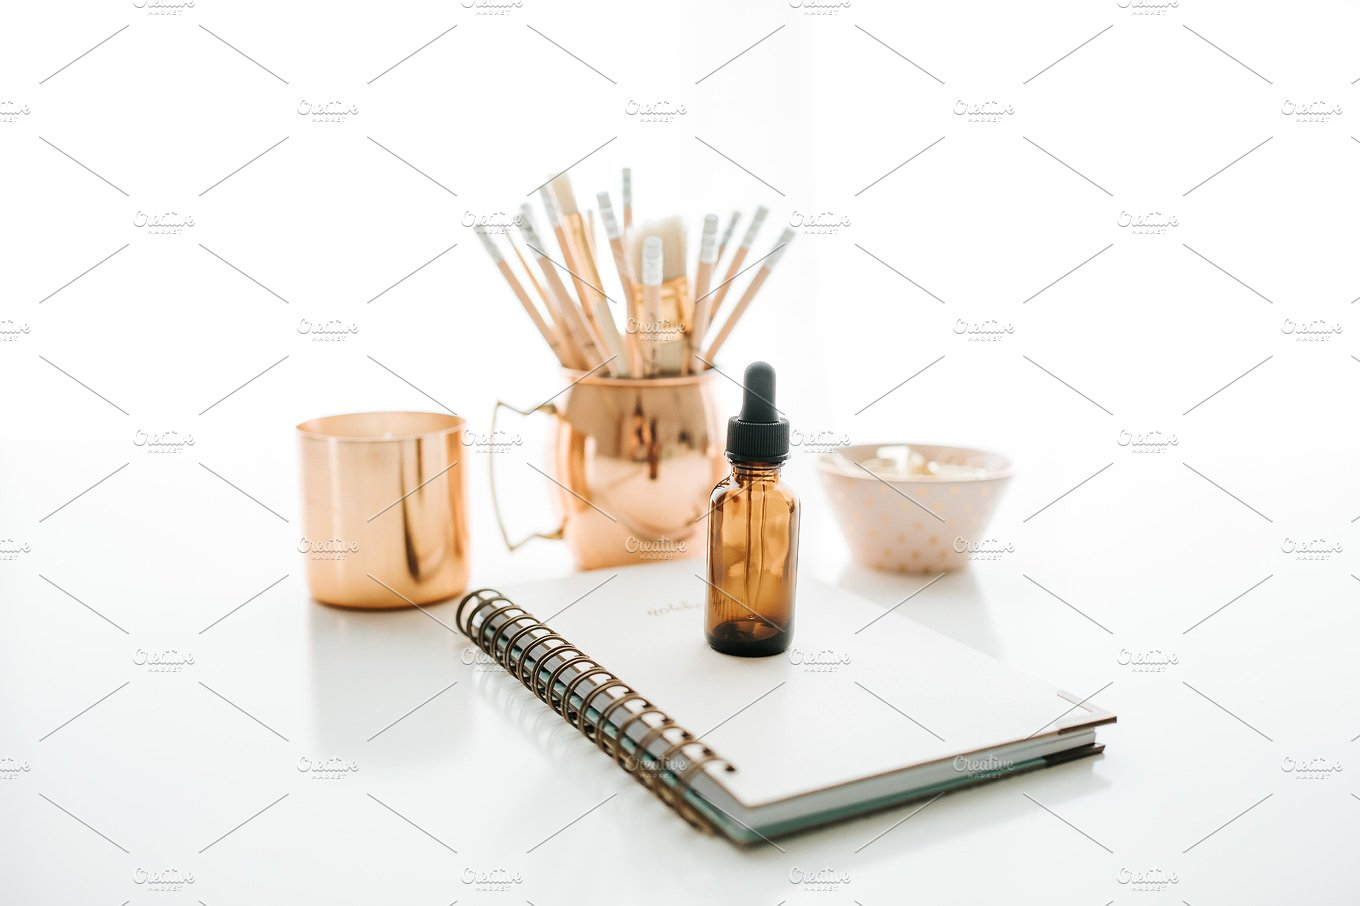 精油库存照片集合 Essential Oils Stock Photo Bundle插图(2)